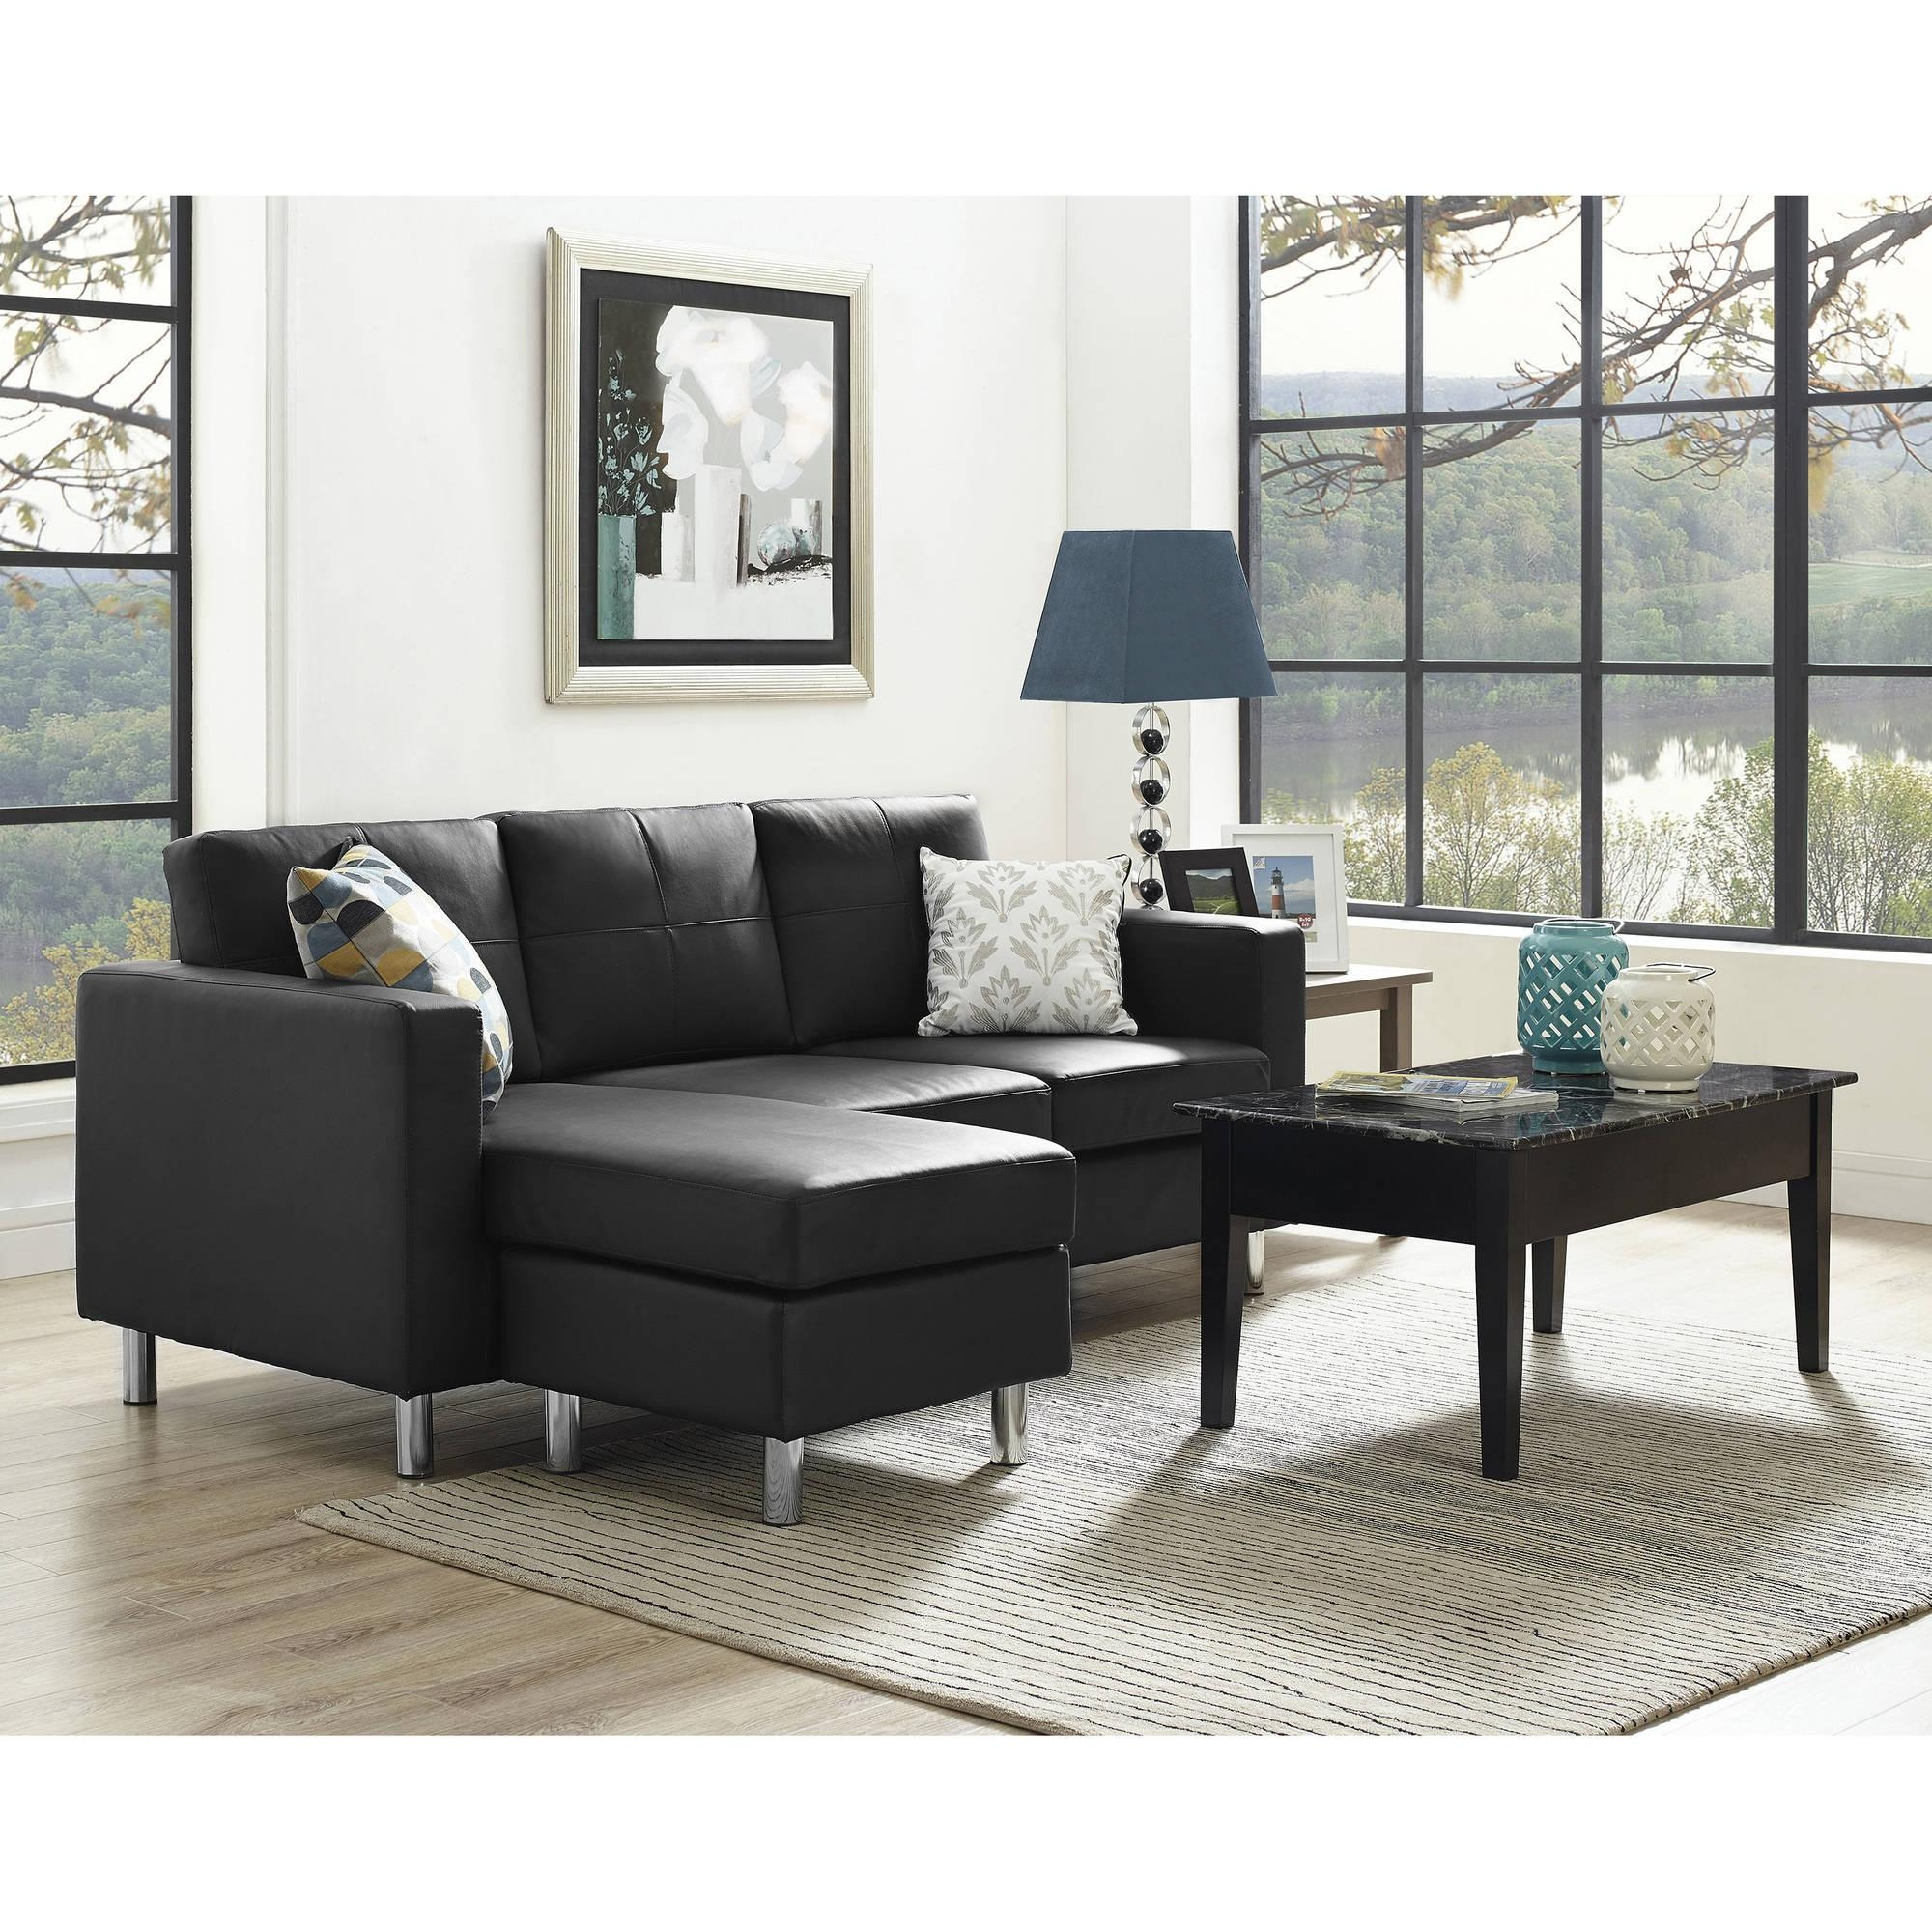 Dorel Living Small Spaces Configurable Sectional Sofa, Multiple Throughout Apartment Sectional Sofa With Chaise (View 14 of 15)